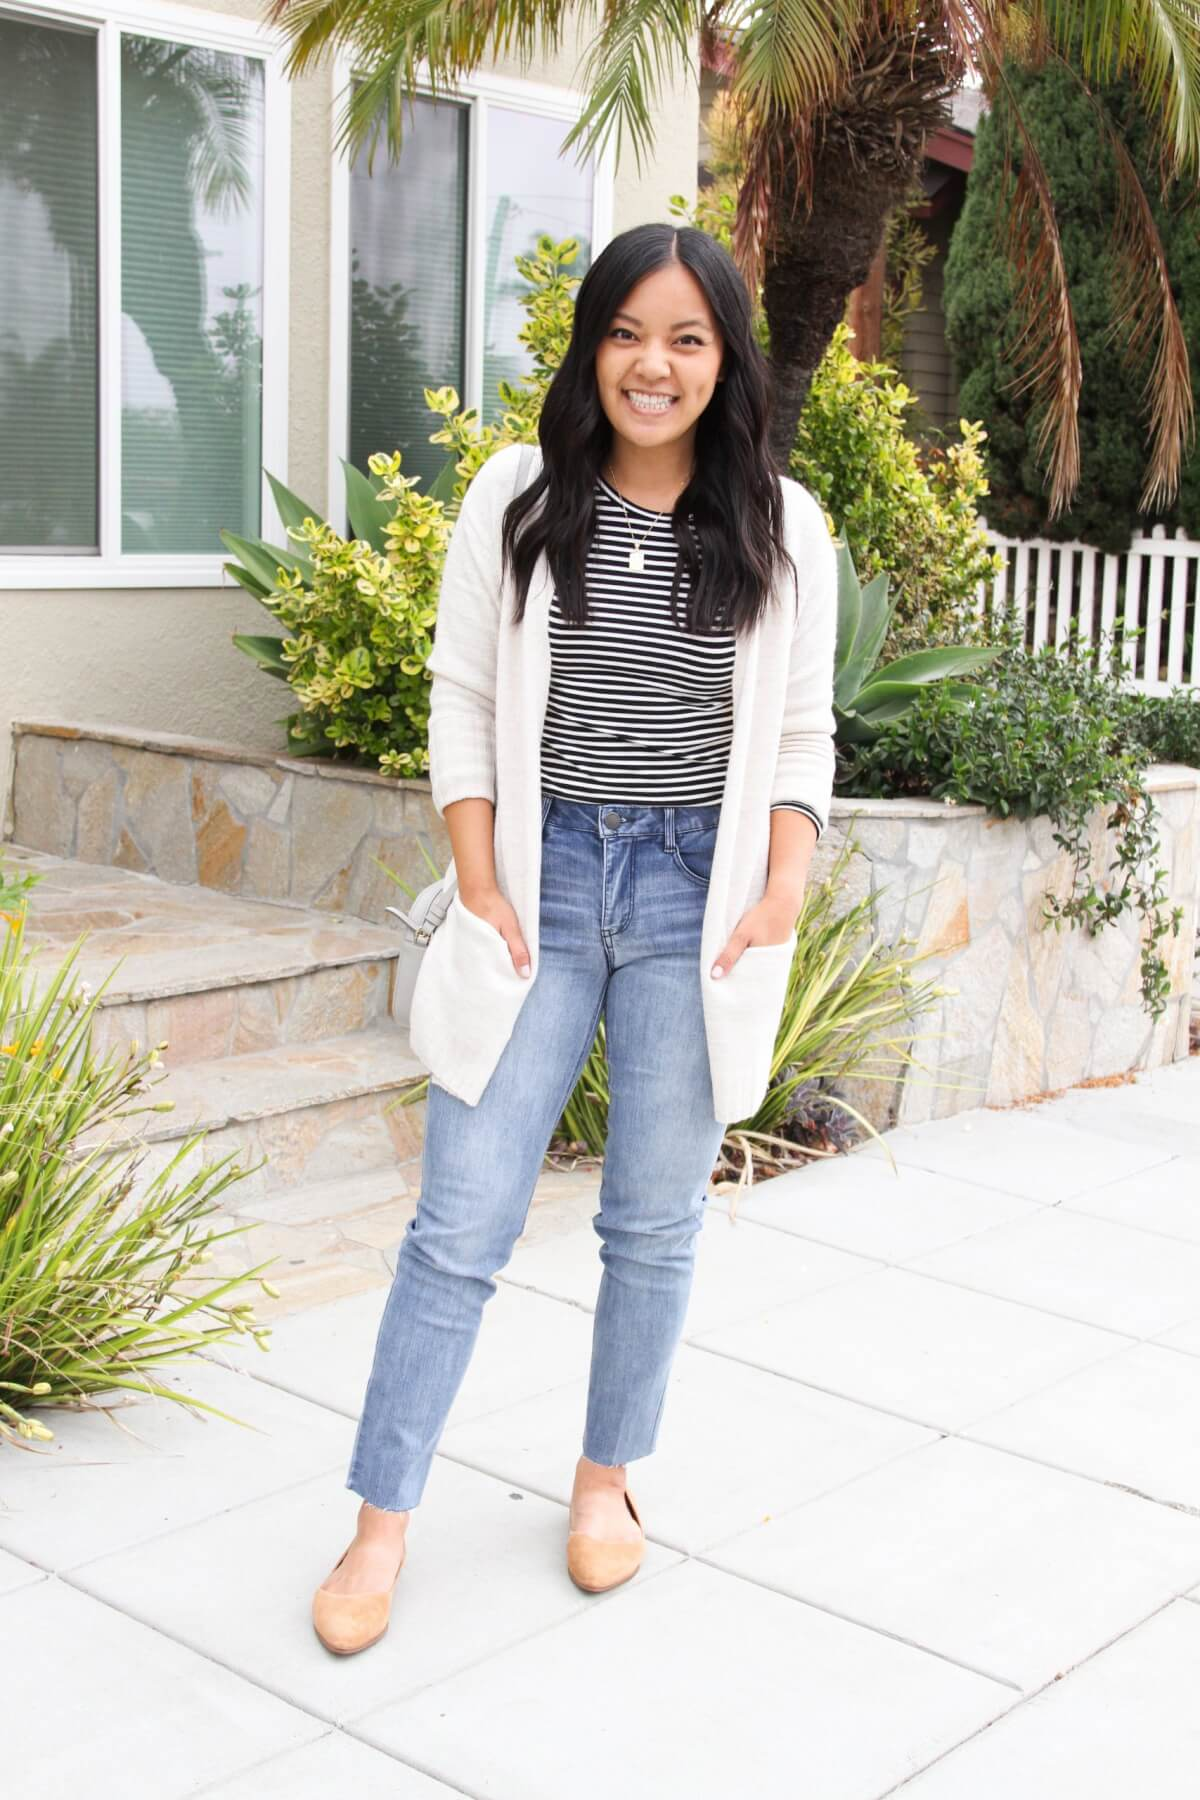 Comfy Casual Work Outfit: black and white striped long sleeve tee + jeans + cream cardigan + tan suede flats + gold pendant necklace + gray crossbody purse